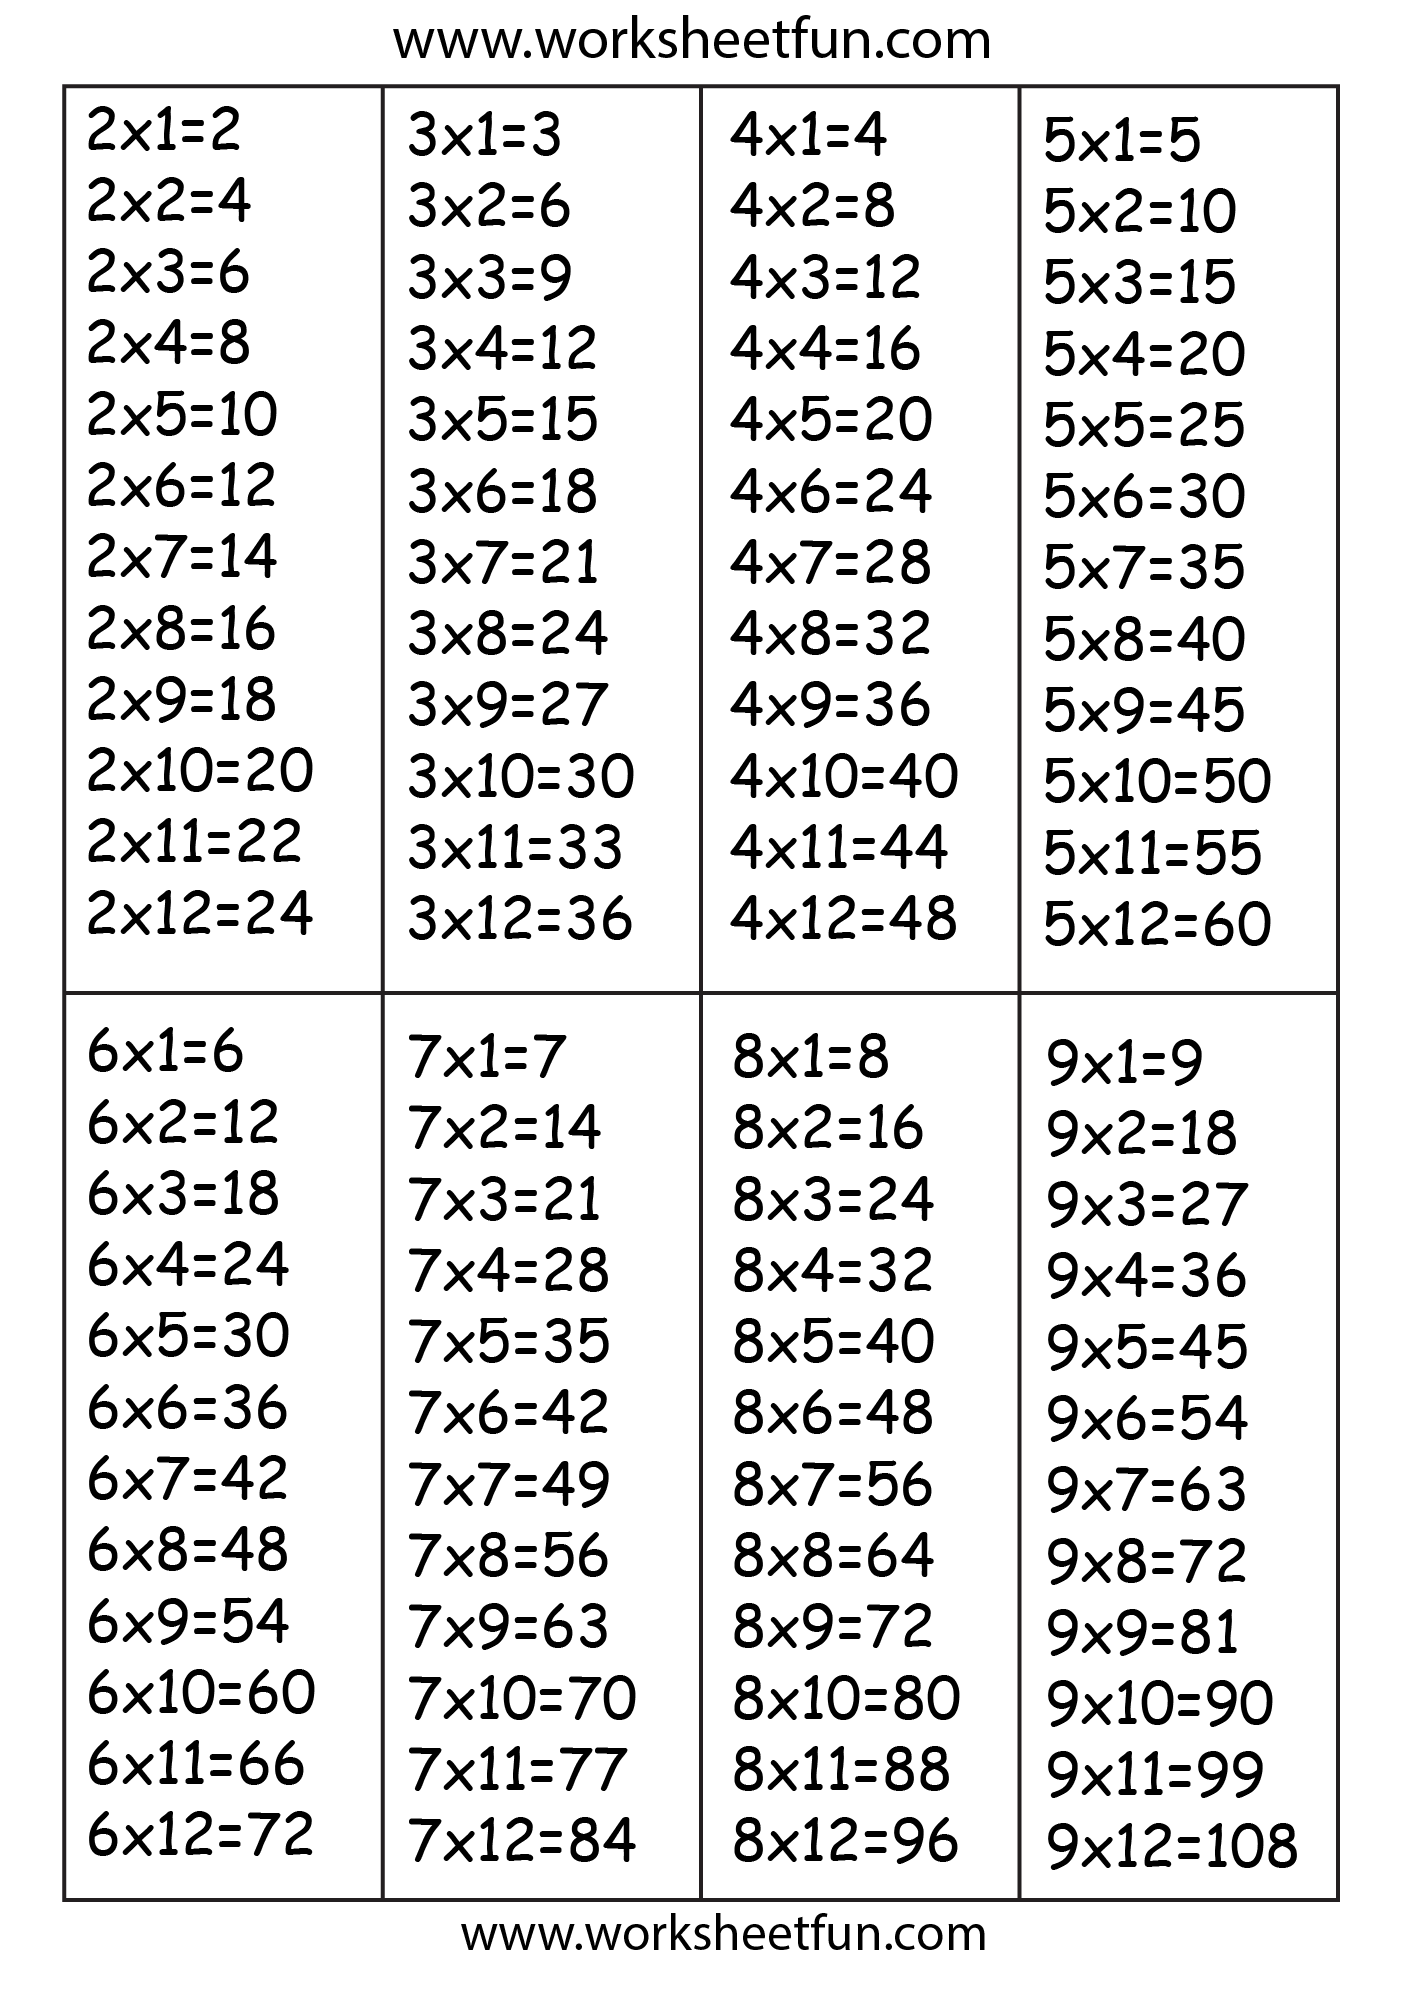 Worksheets Printable Times Table By 15 times tables free printable worksheets worksheetfun table chart 2 3 4 5 6 7